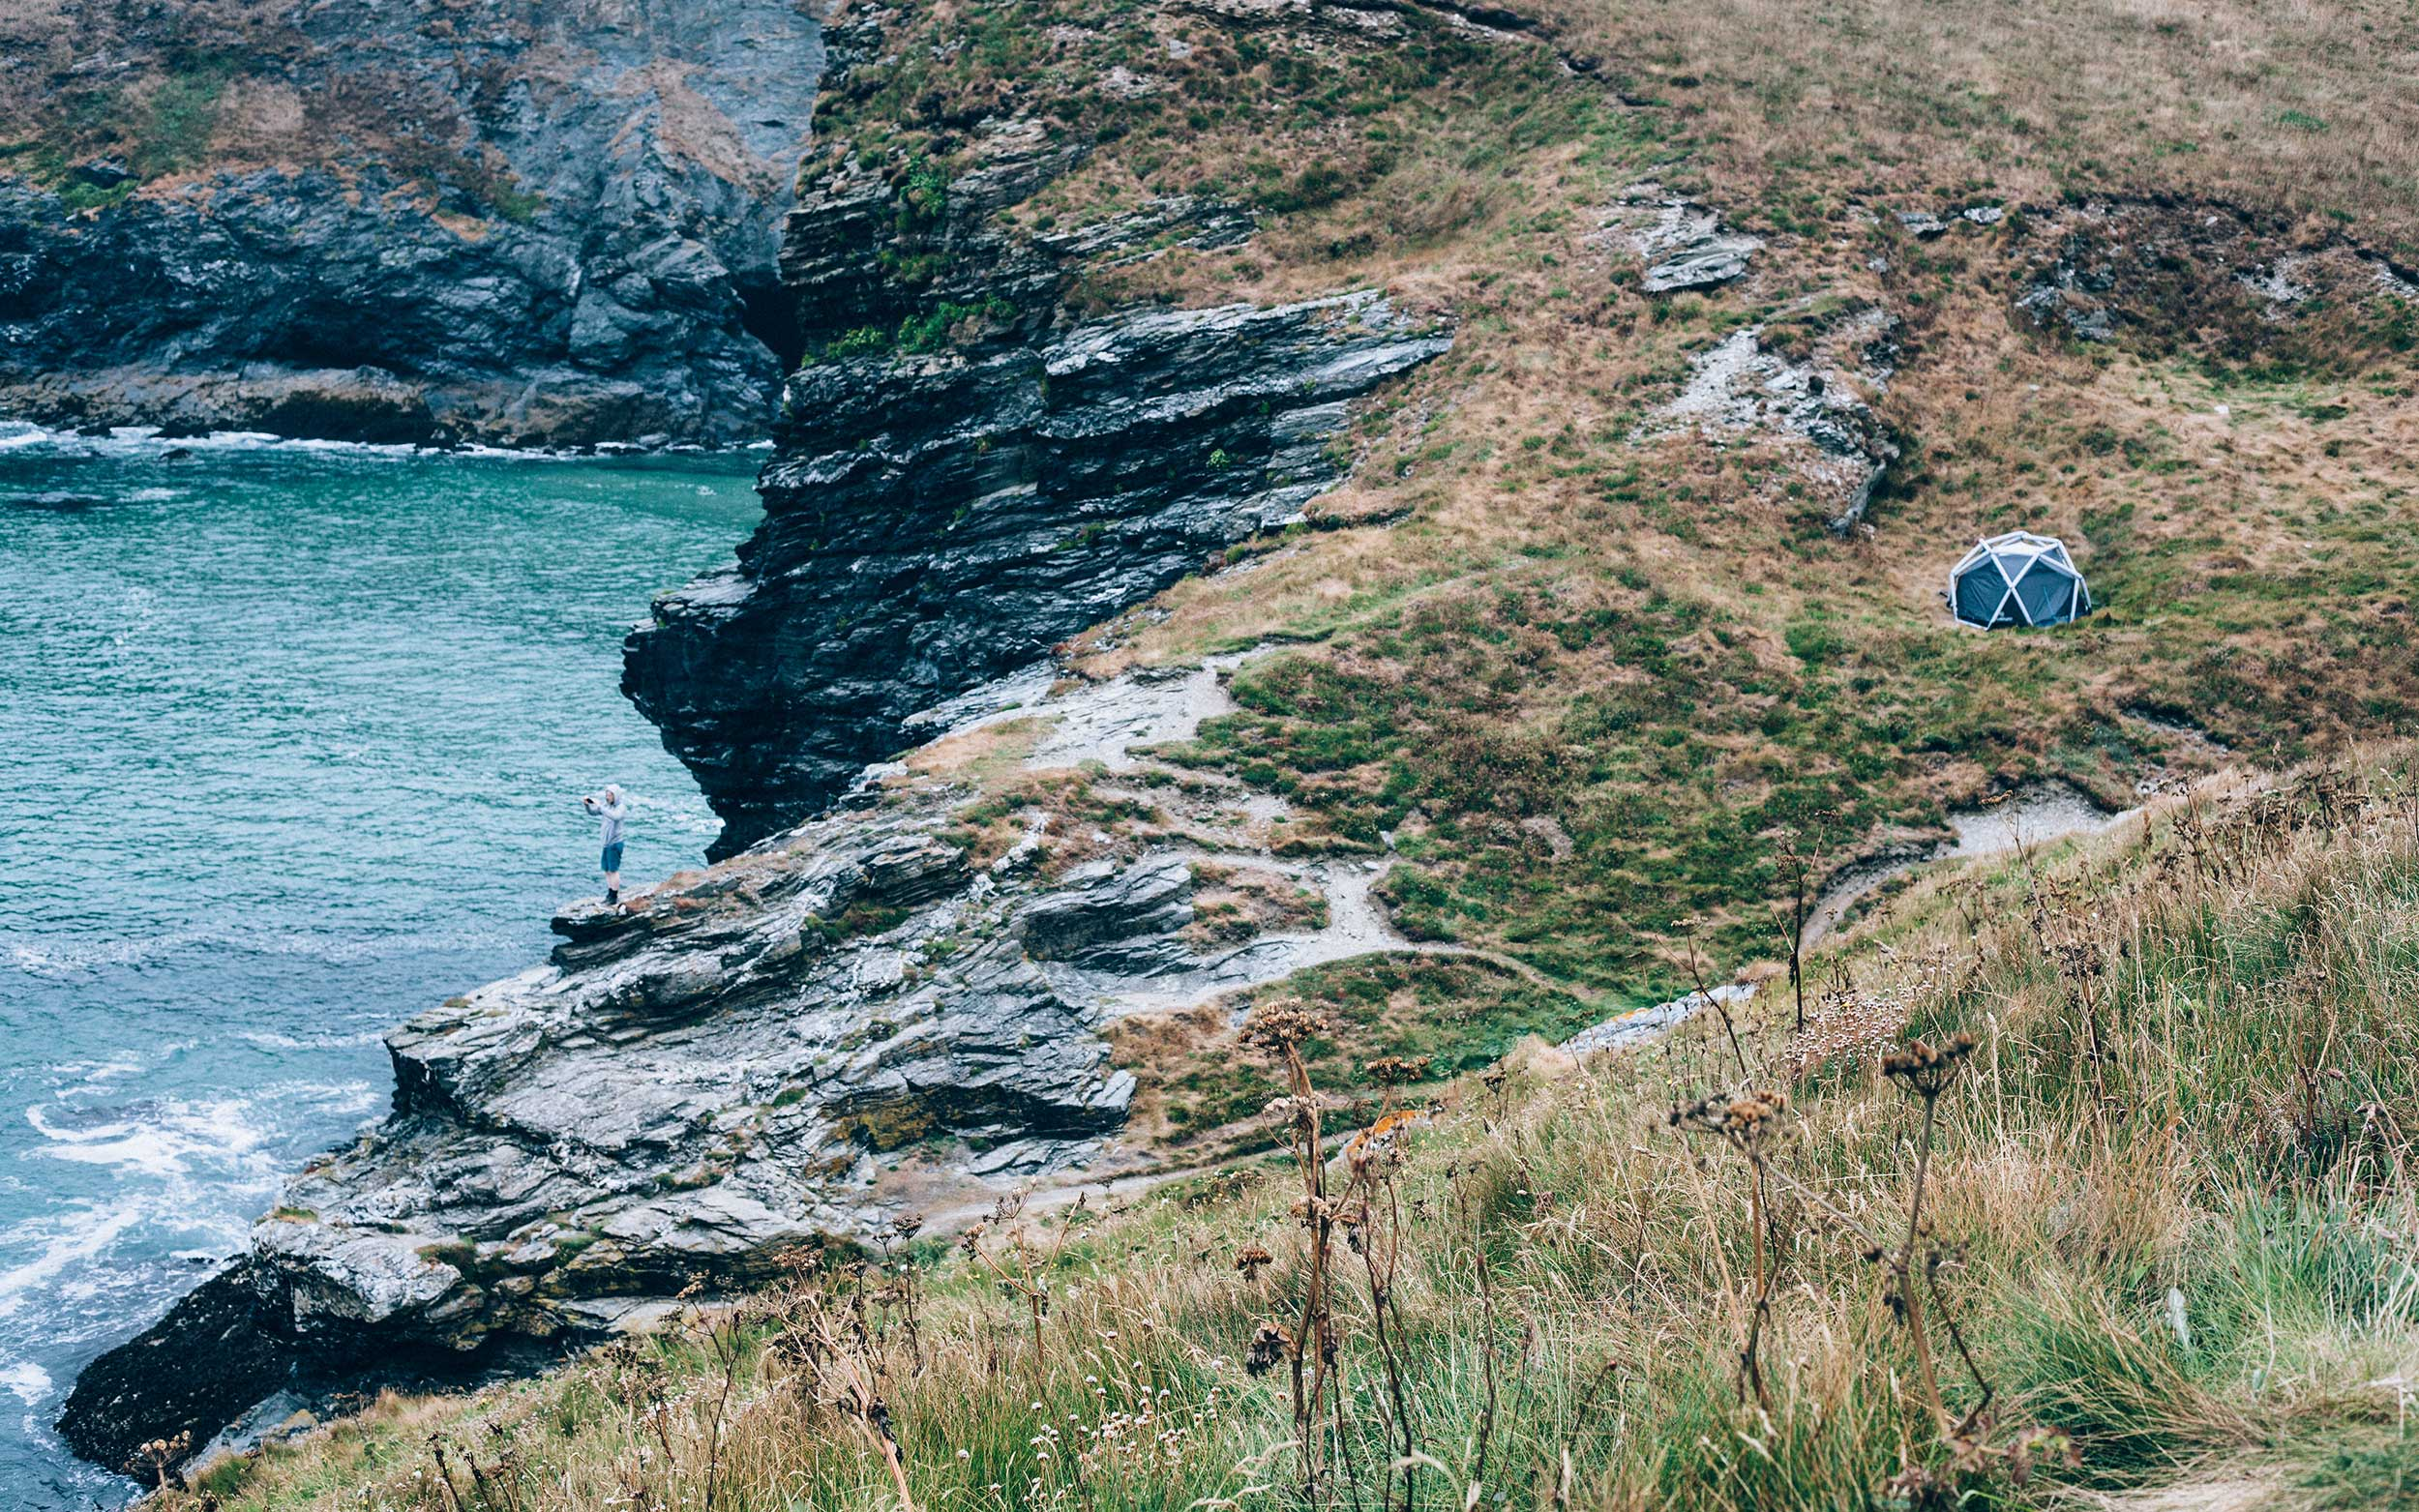 Solo+Camping+in+Cornwall+_+With+Heimplanet+_+Karl+Mackie+Photography (7).jpeg